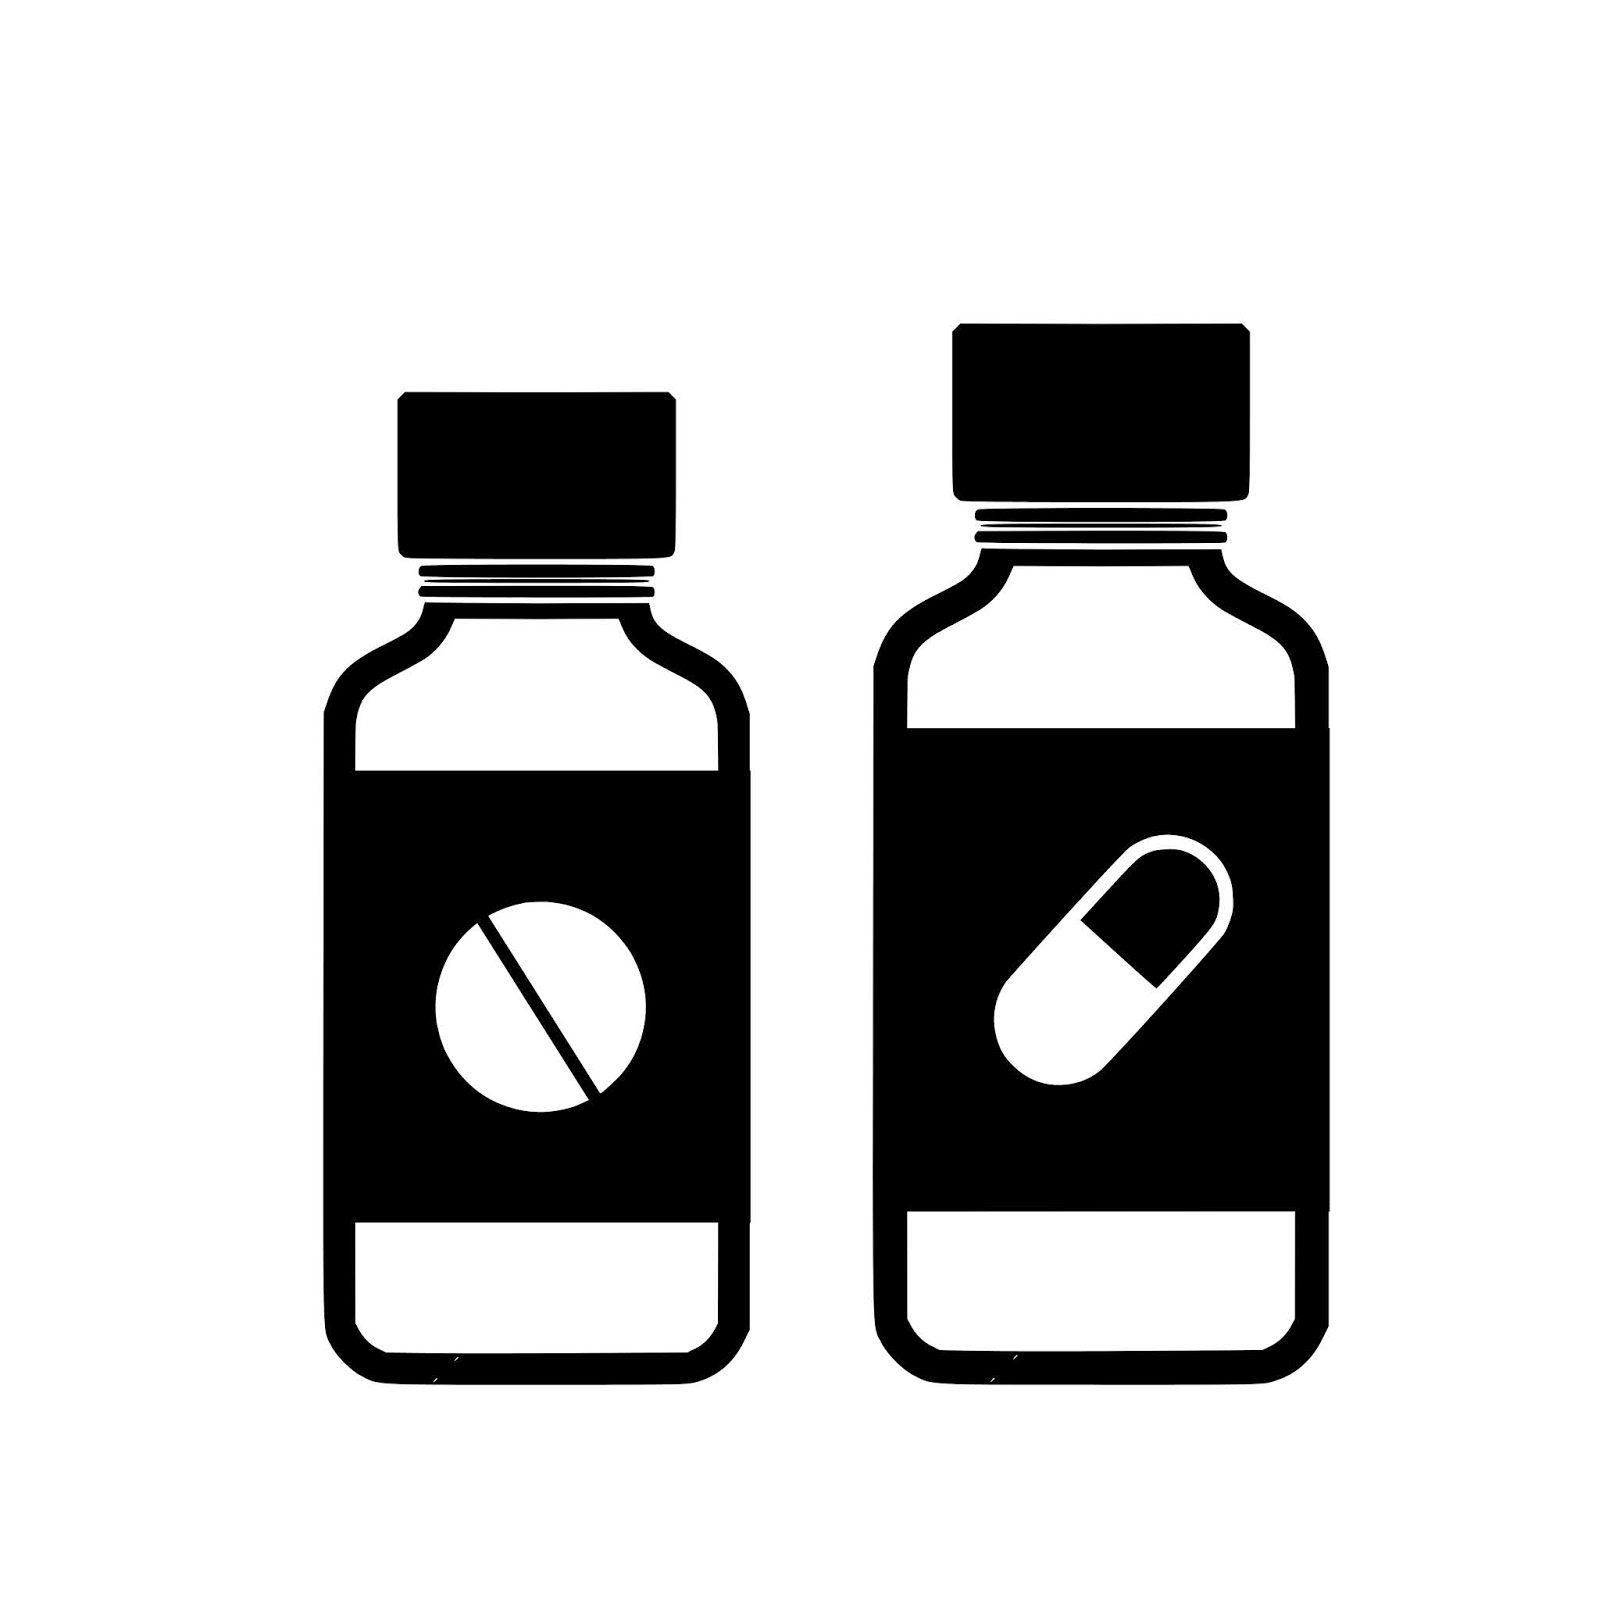 Download Free Images And Illustrations Silhouette Of Medicine Bottle Bottle Medicine Bottles Medicine